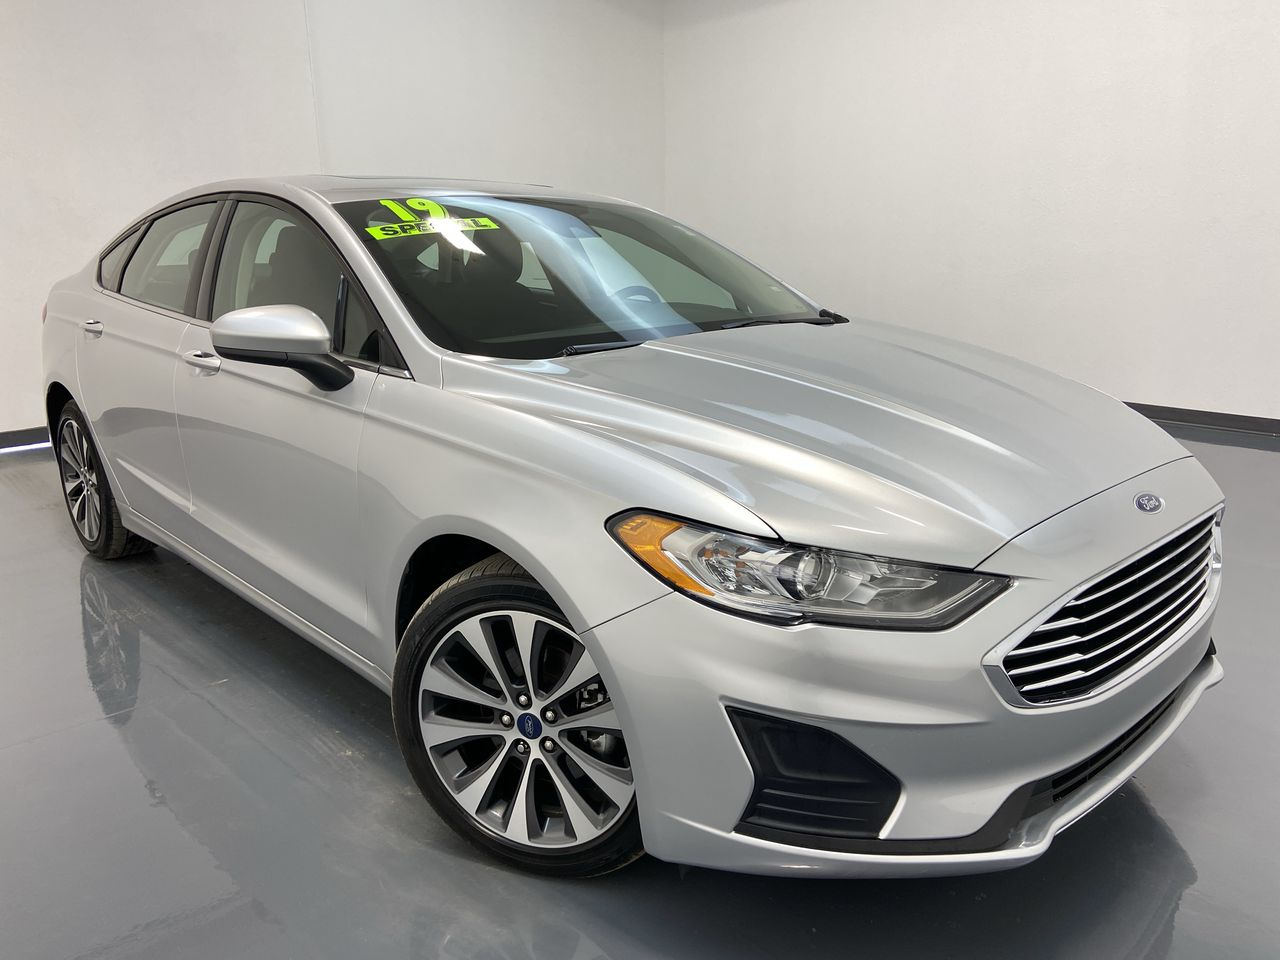 2019 Ford Fusion 4D Sedan AWD  - 16388  - C & S Car Company